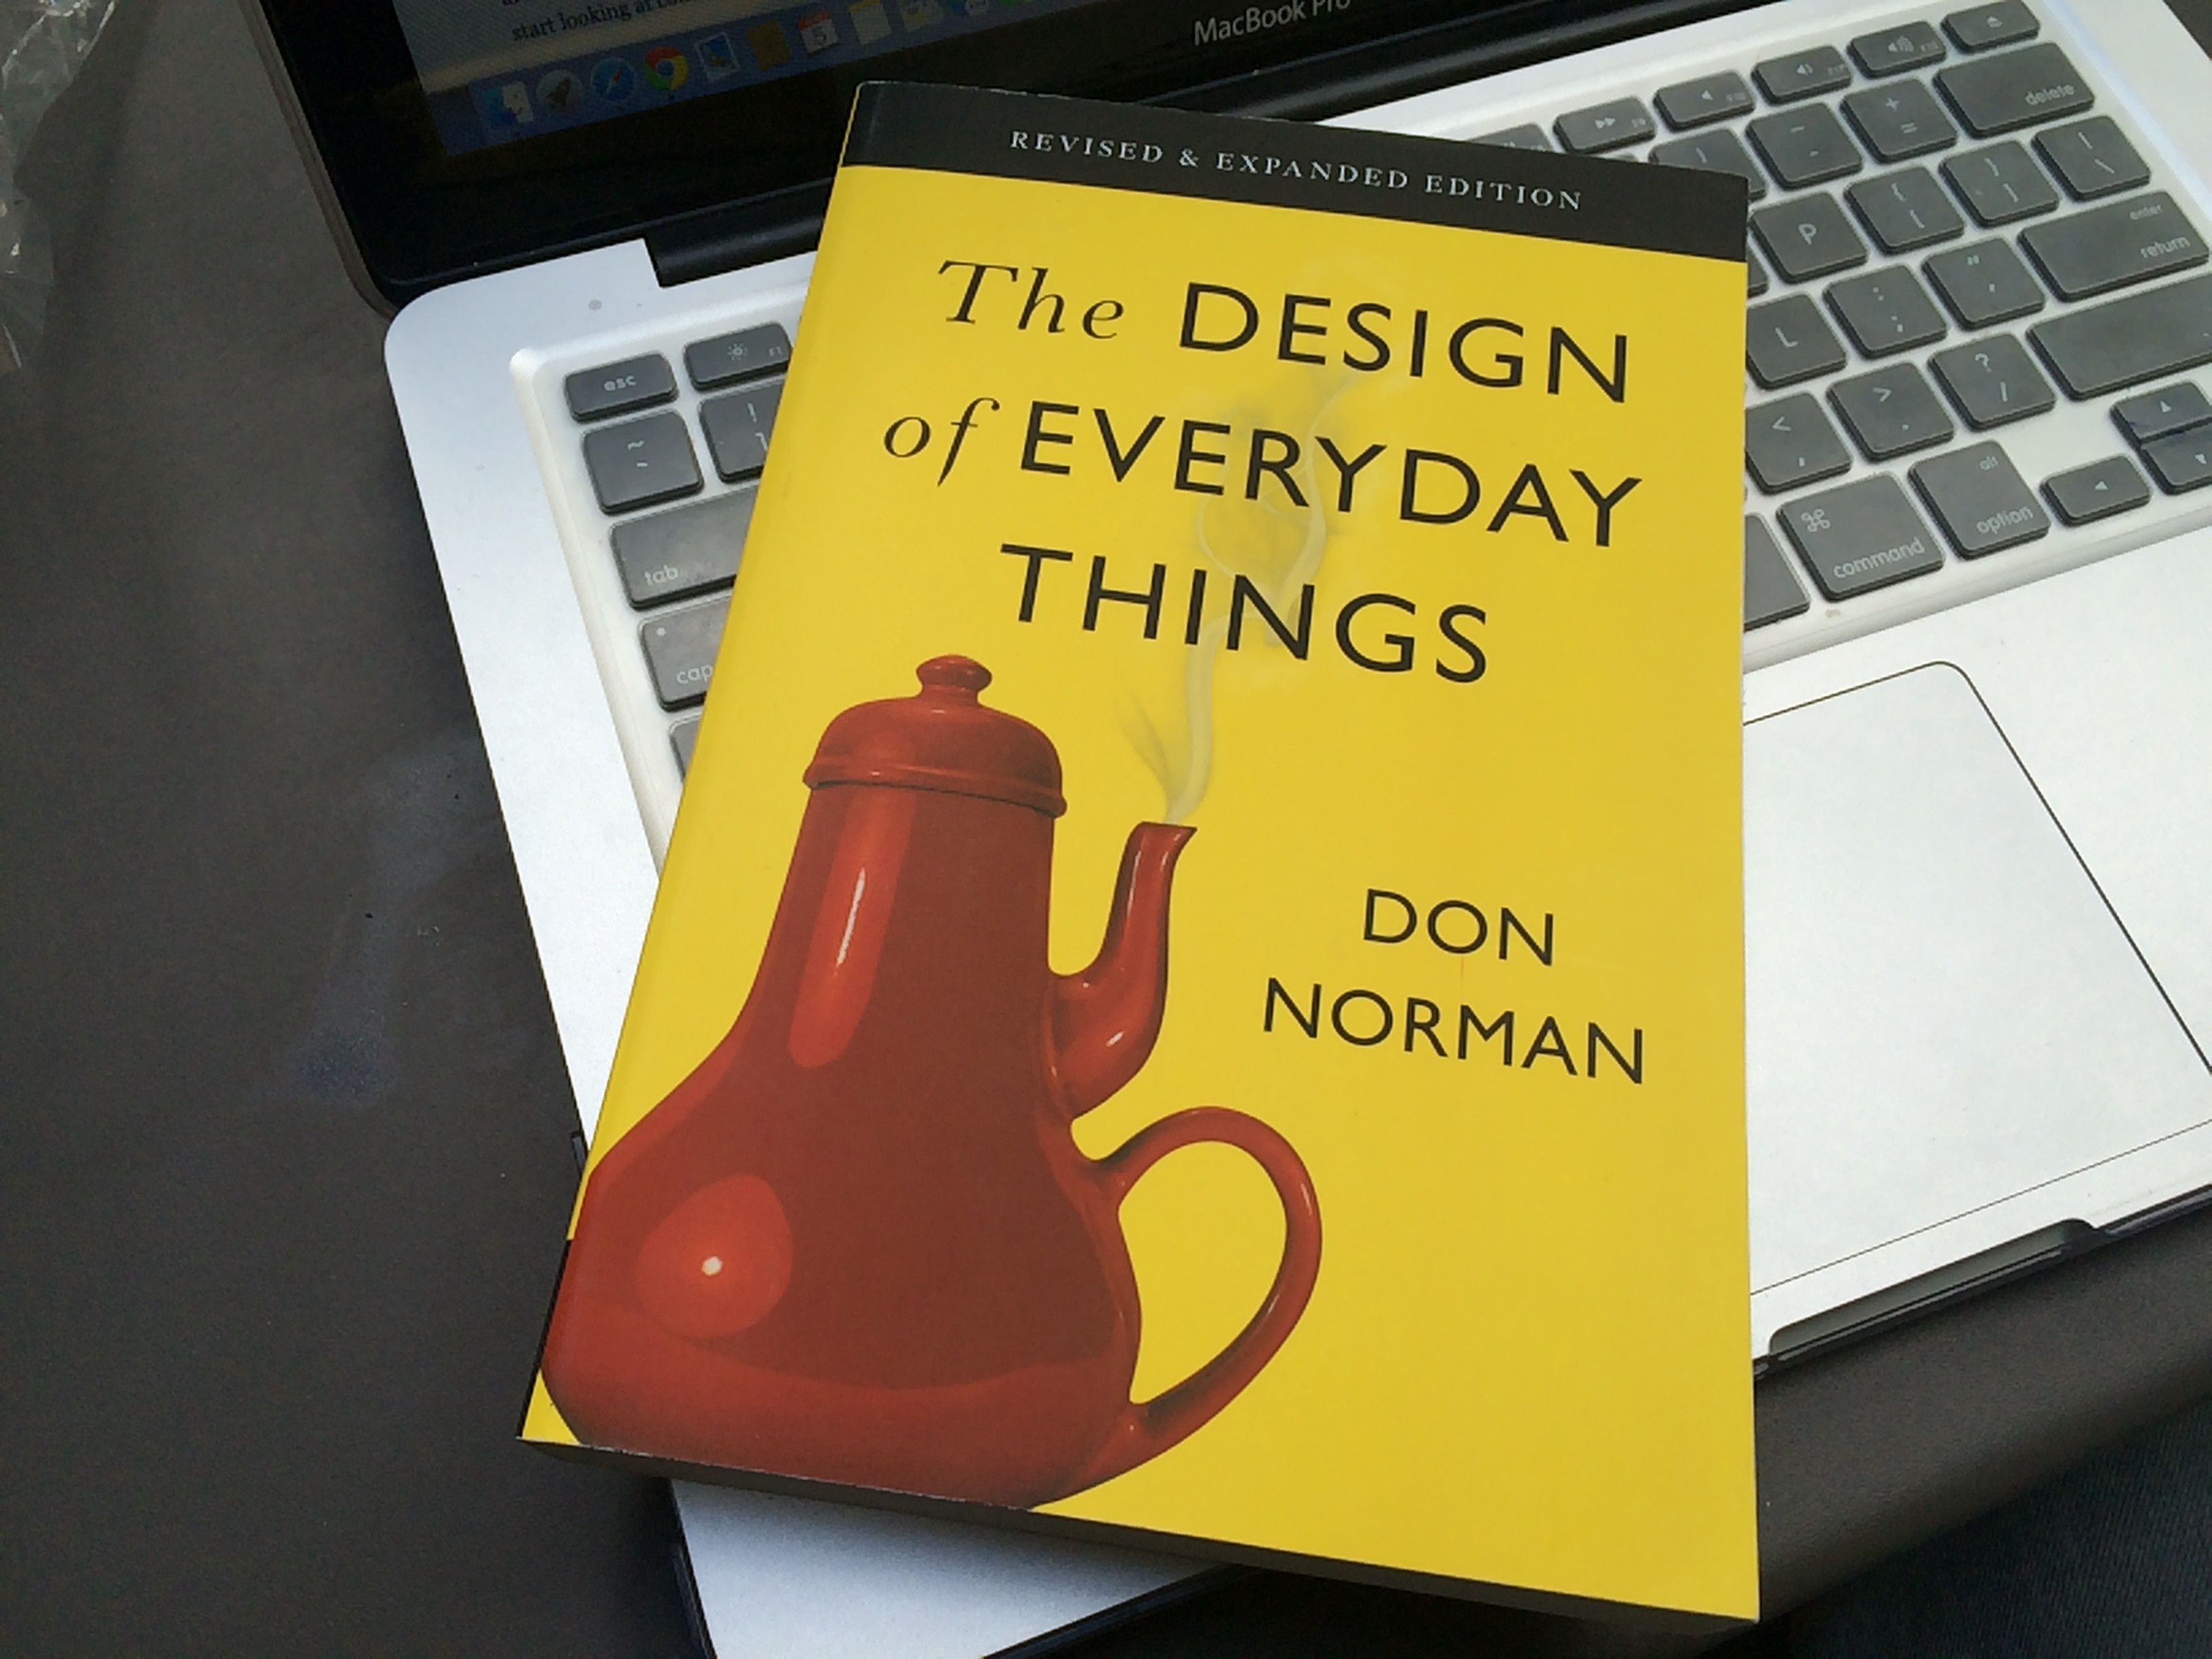 The Design of Everyday Things by Don Norman